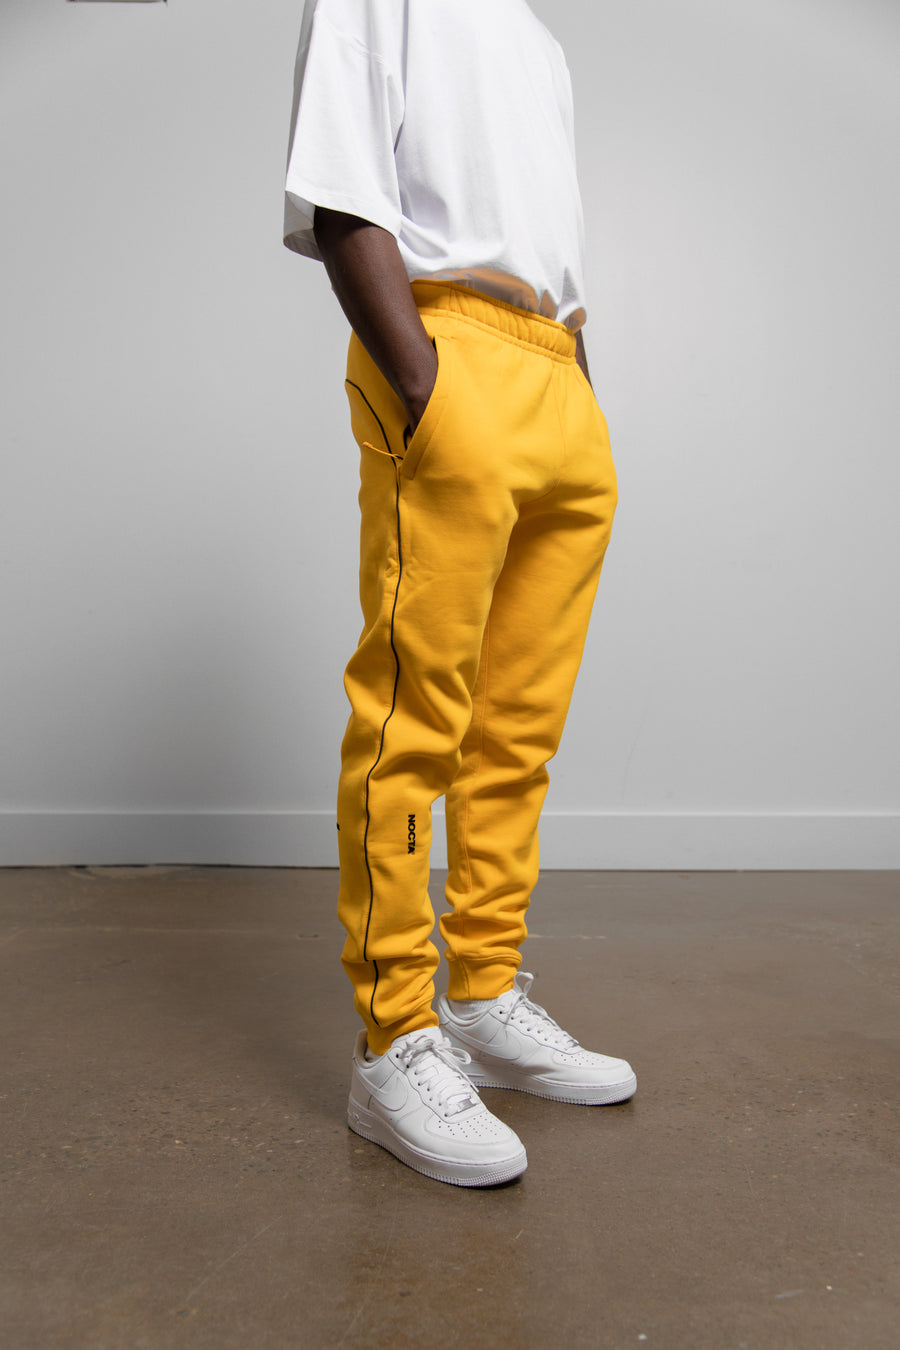 Fleece Pant University Gold DA3935-793 (LAUNCH PRODUCT)